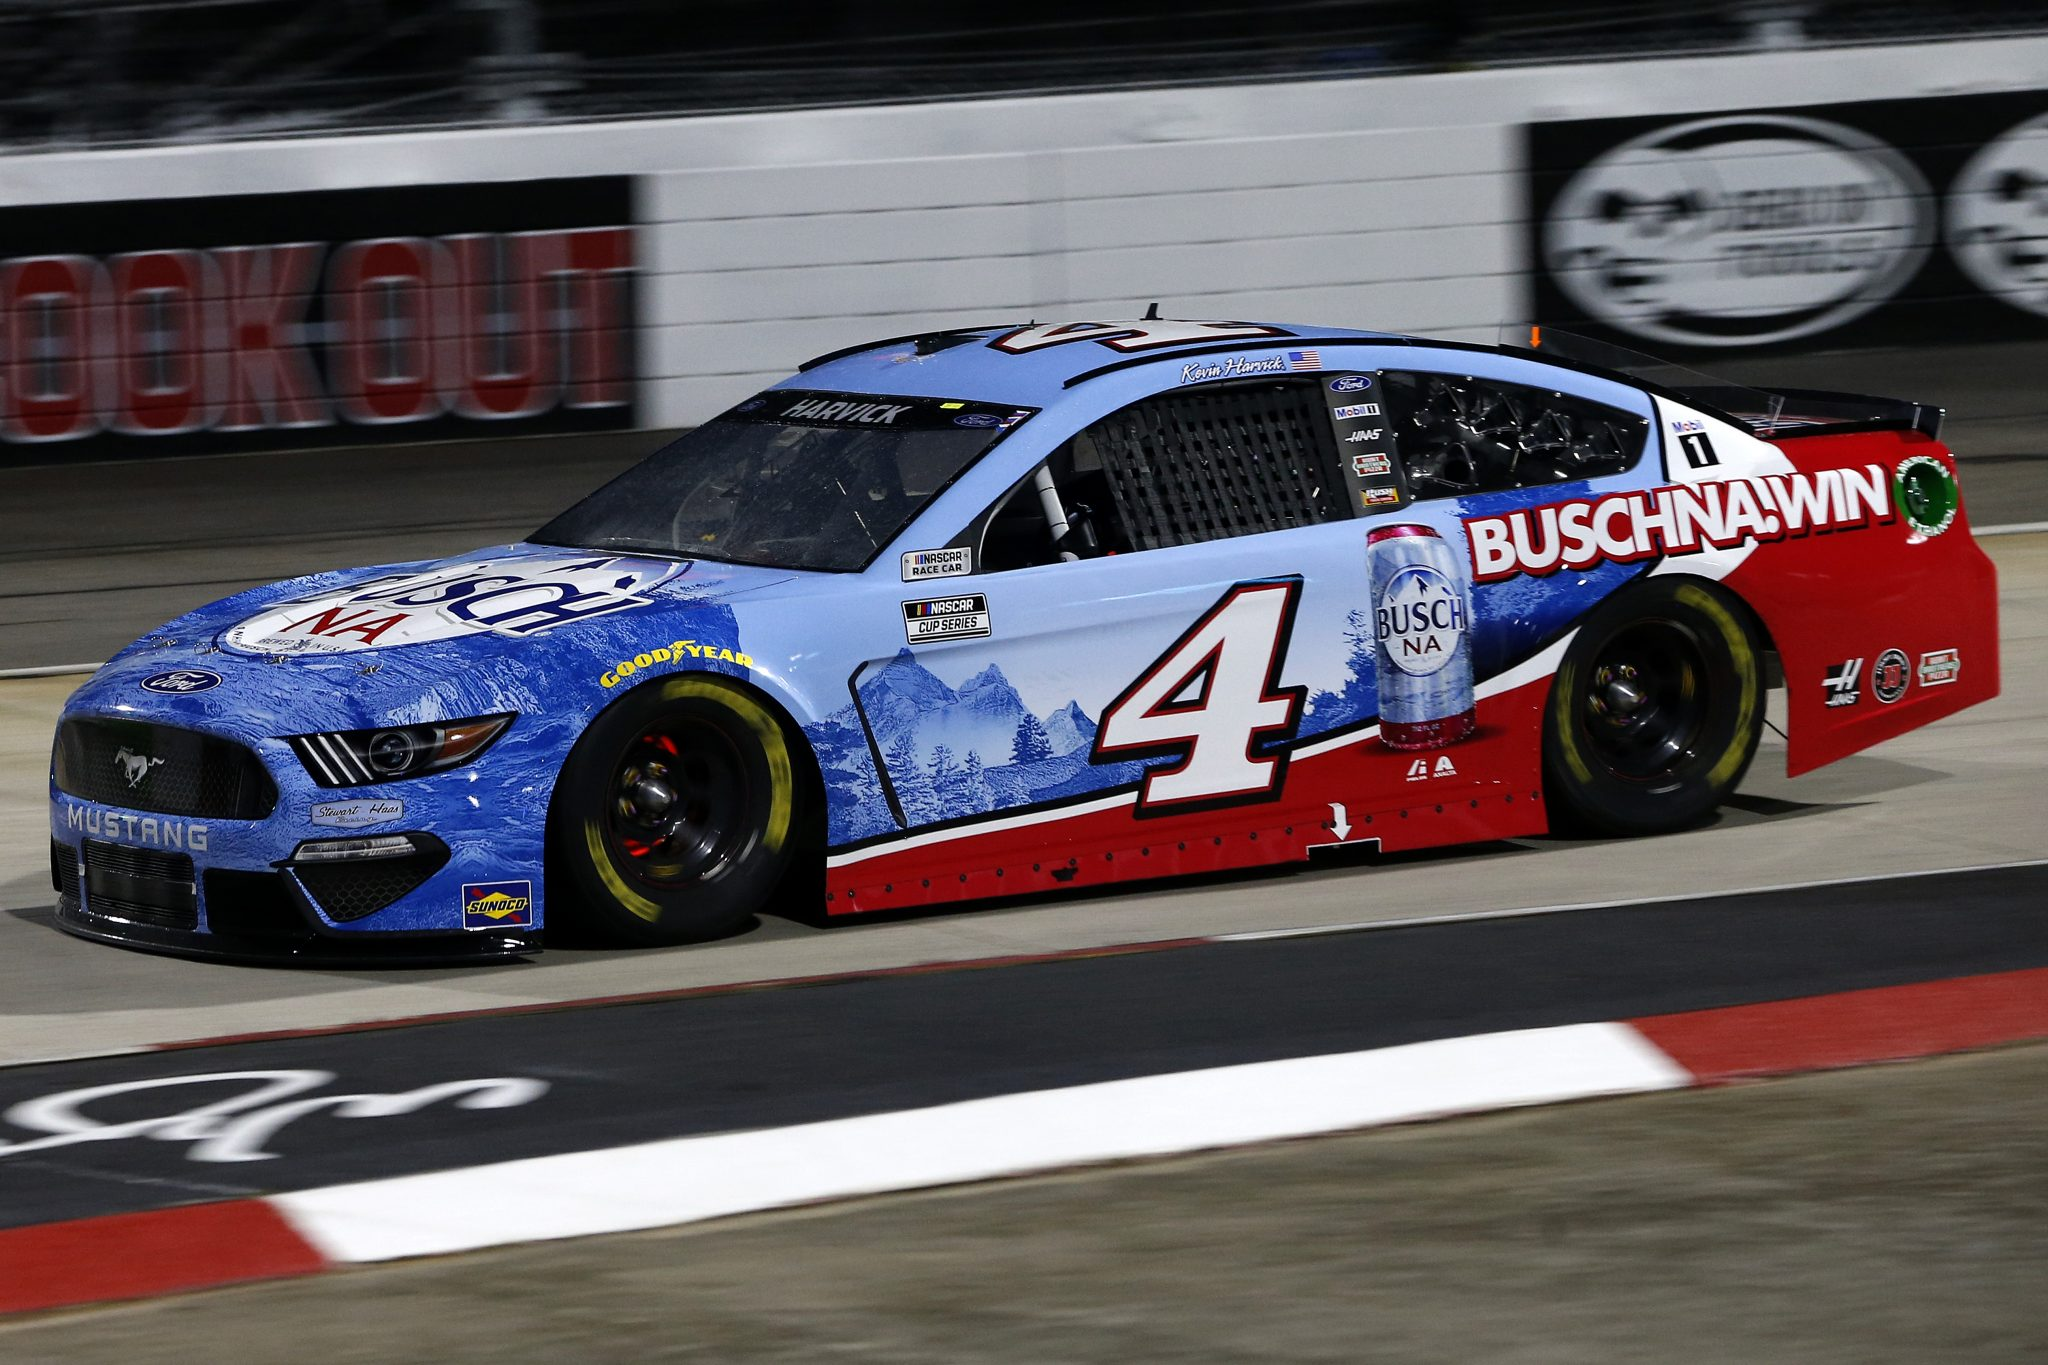 MARTINSVILLE, VIRGINIA - APRIL 10: Kevin Harvick, driver of the #4 Ford, drives during the NASCAR Cup Series Blue-Emu Maximum Pain Relief 500 at Martinsville Speedway on April 10, 2021 in Martinsville, Virginia. (Photo by Brian Lawdermilk/Getty Images) | Getty Images